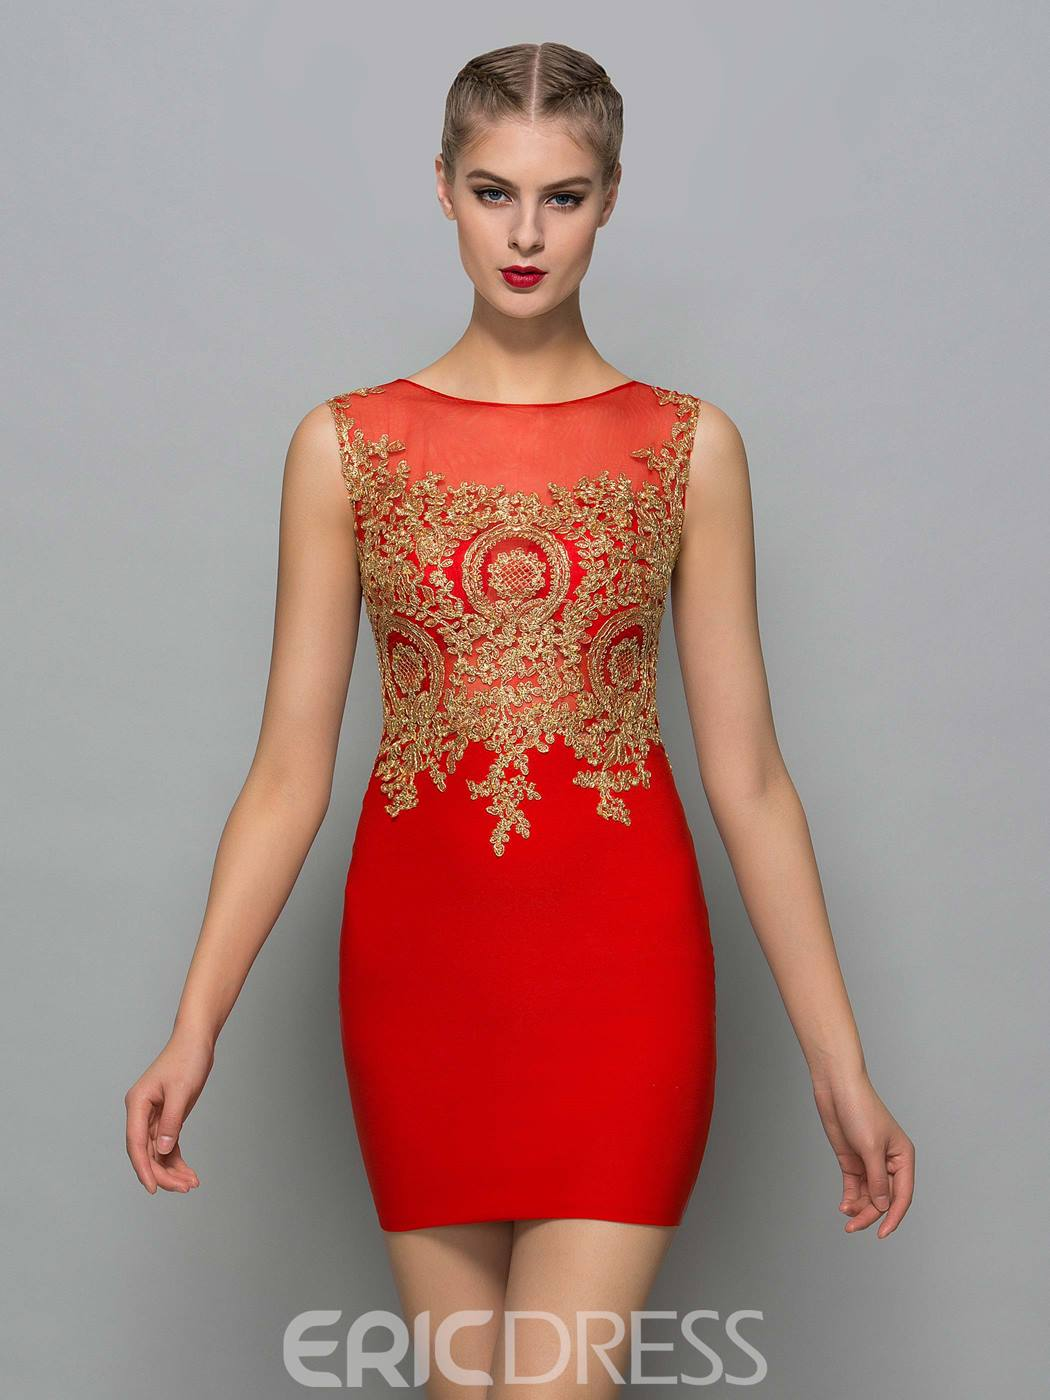 Ericdress Scoop Neck Appliques Red Sexy Cocktail Dress 11920126 ...